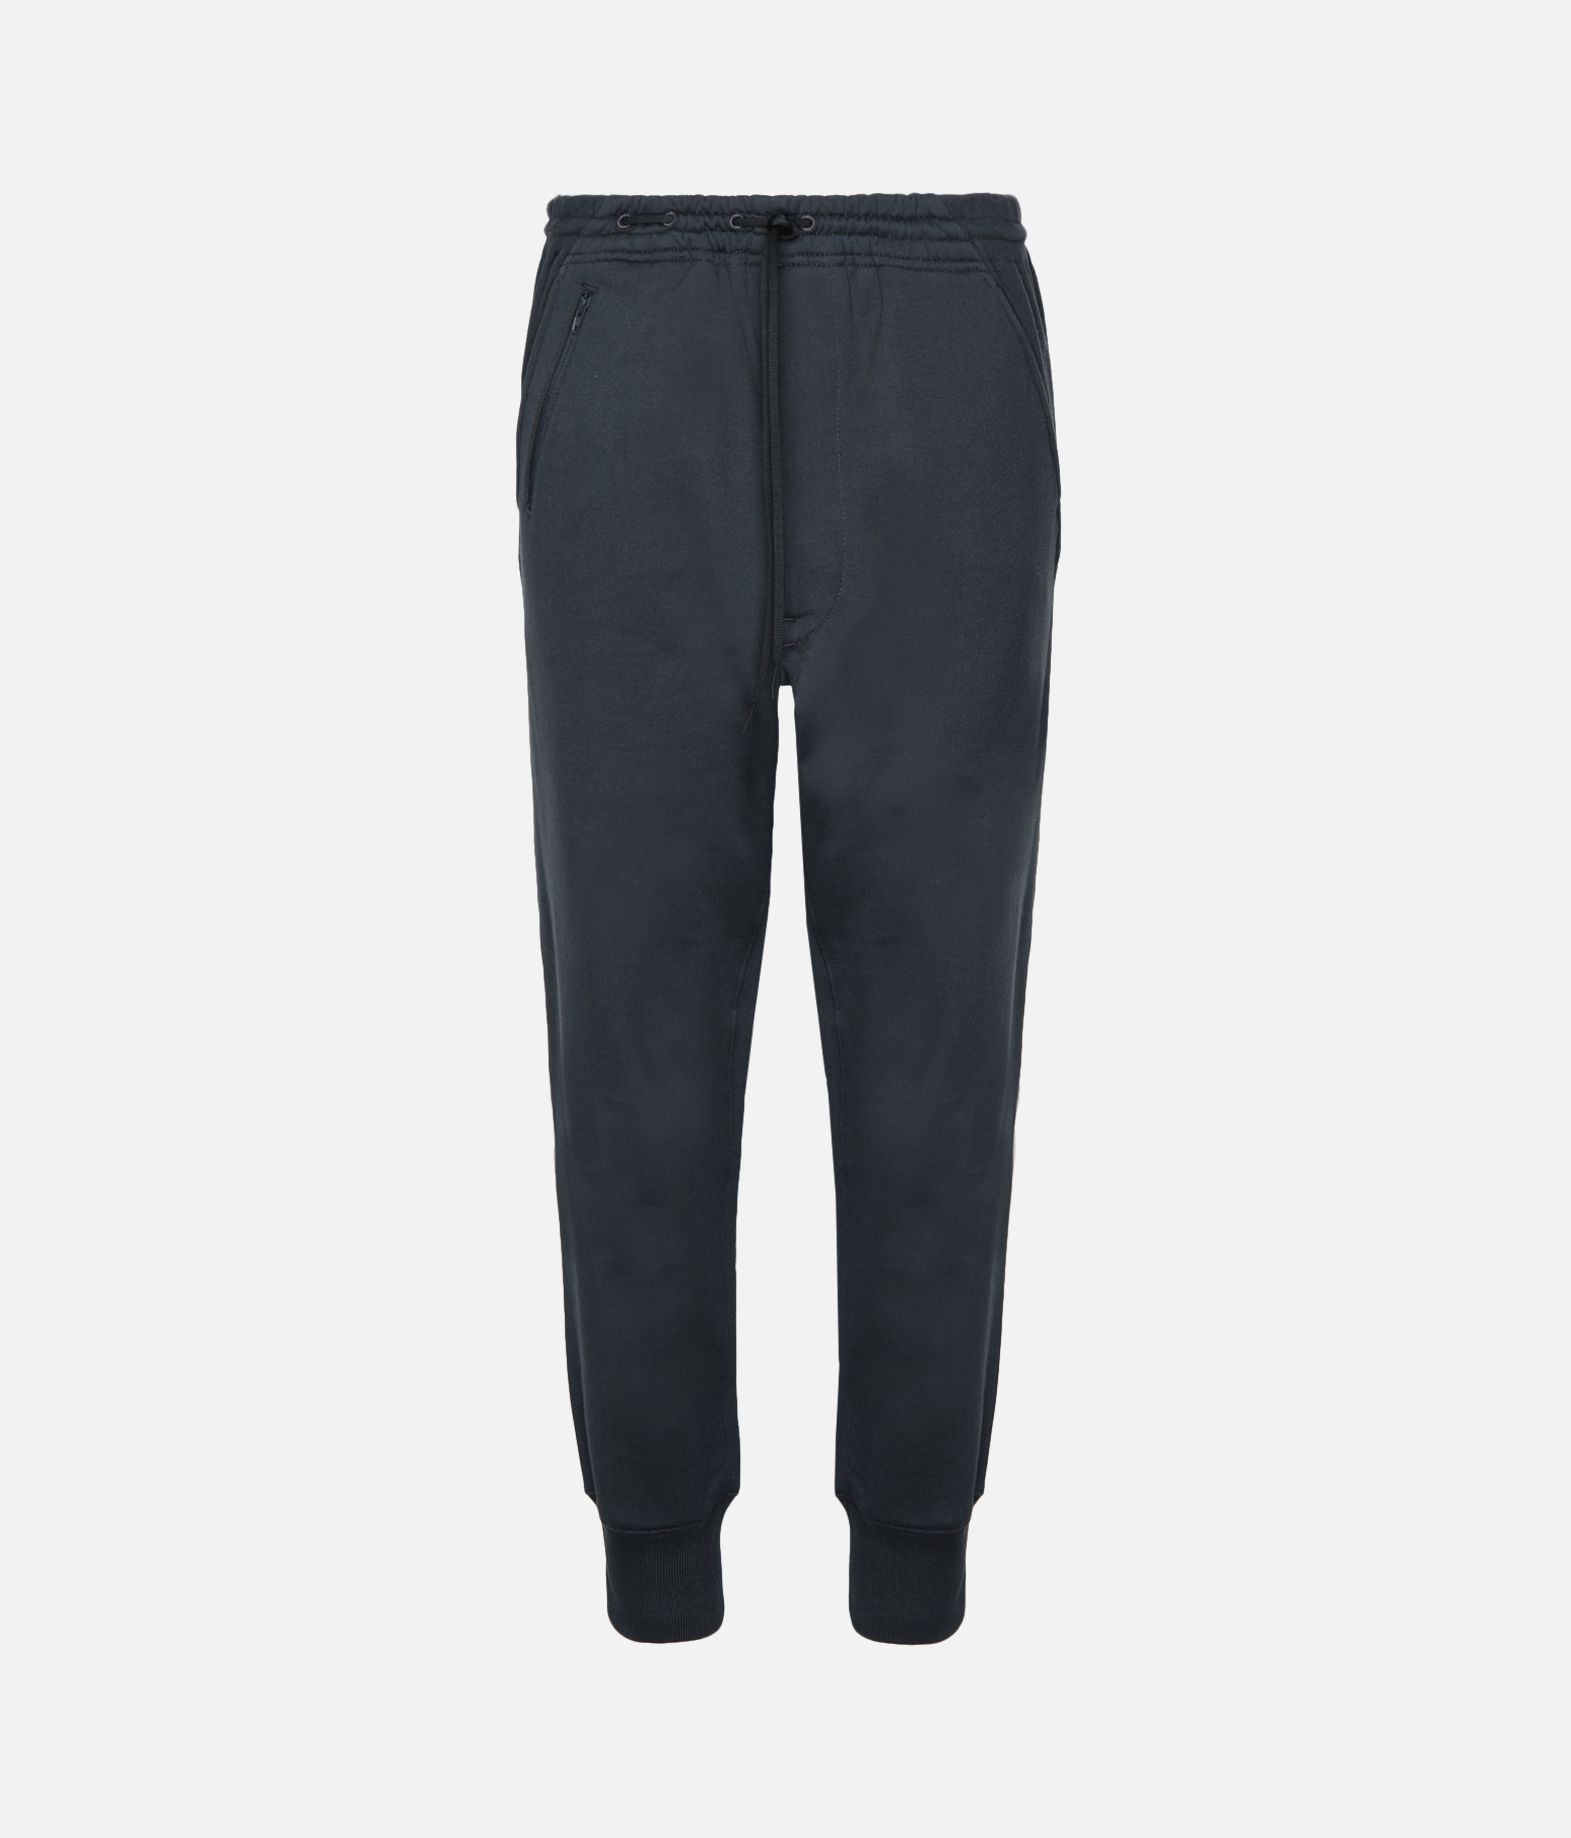 Y-3 Y-3 Classic Cuffed Pants Sweatpants Woman f